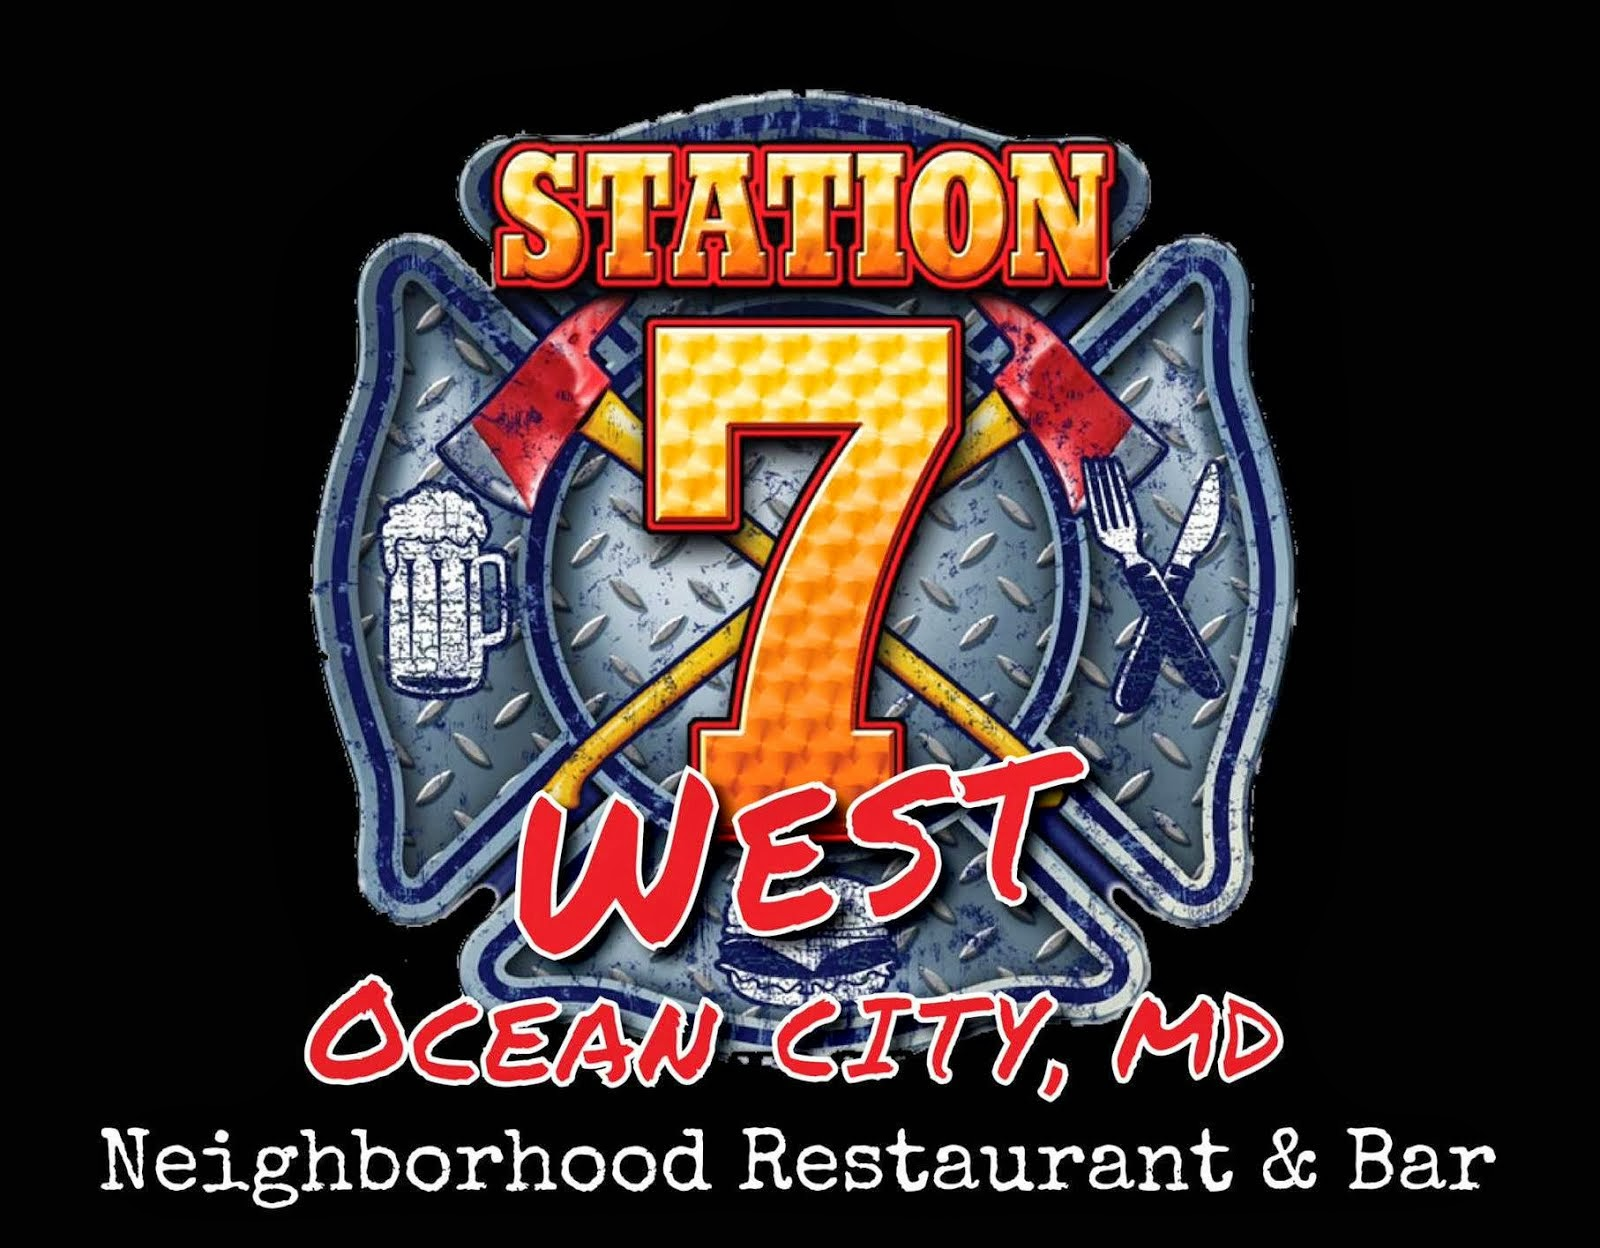 Station 7 West Ocean City, MD.